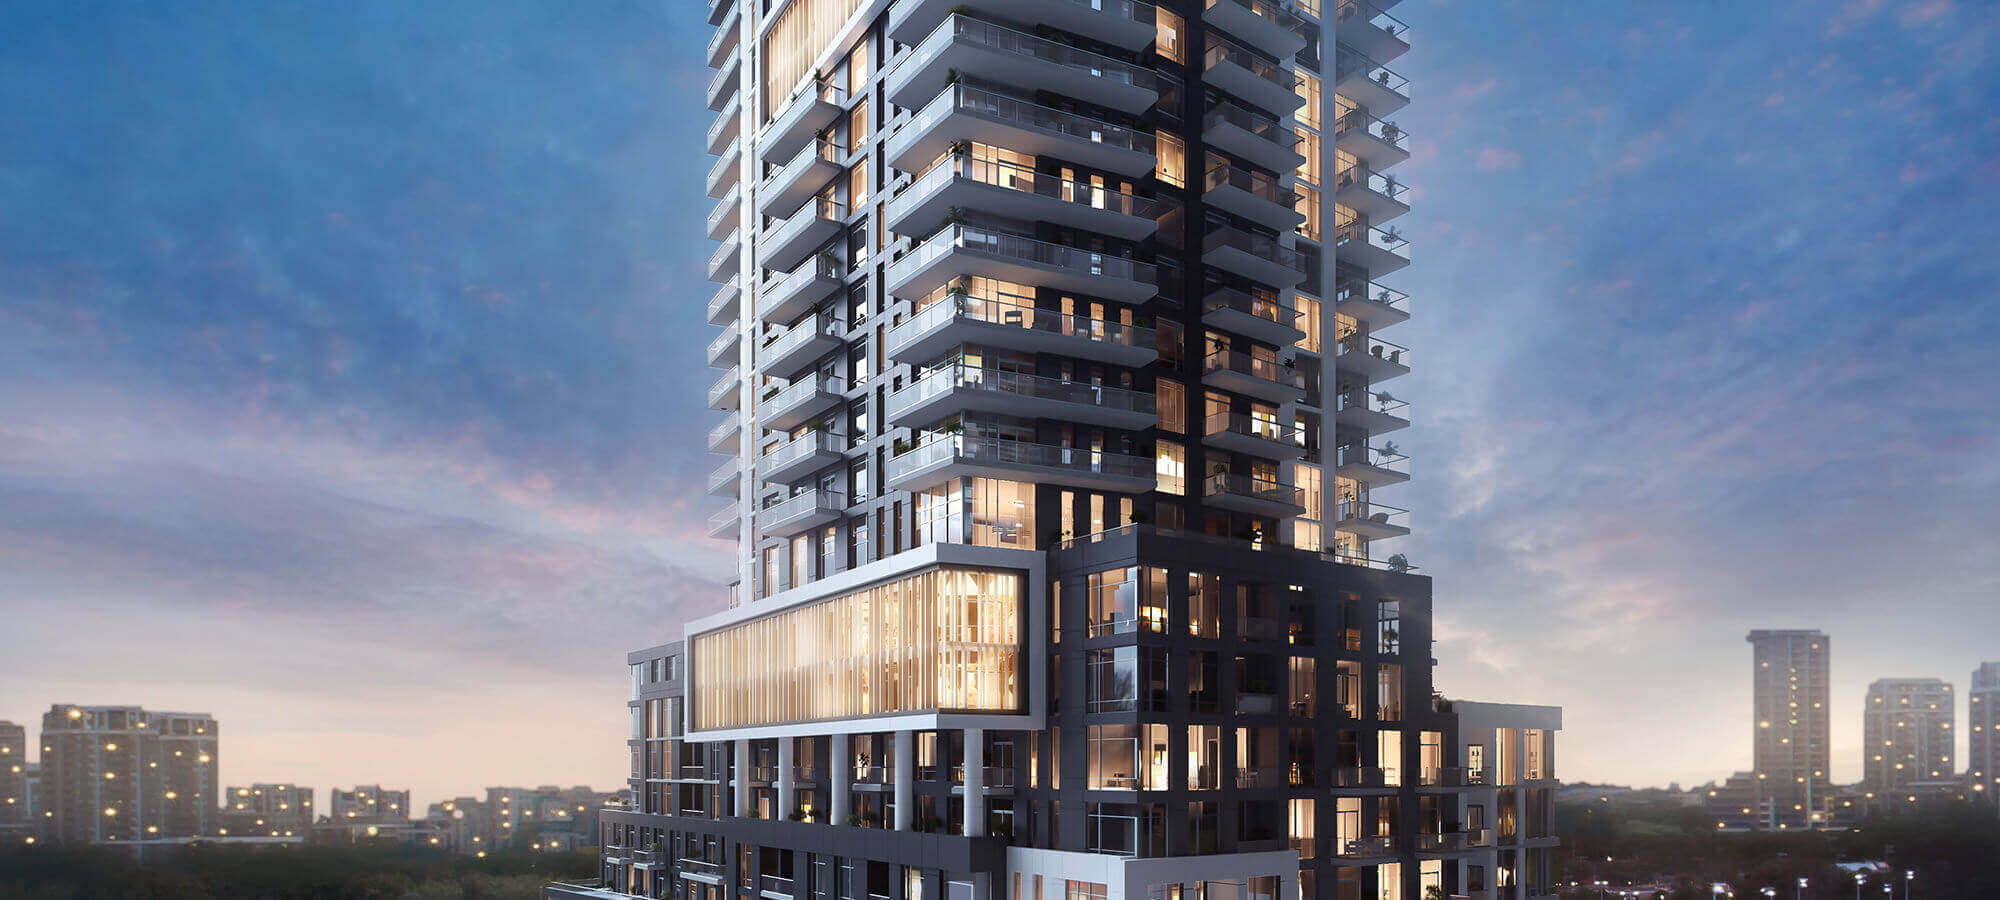 Markham Square Condo Exterior Sunset View